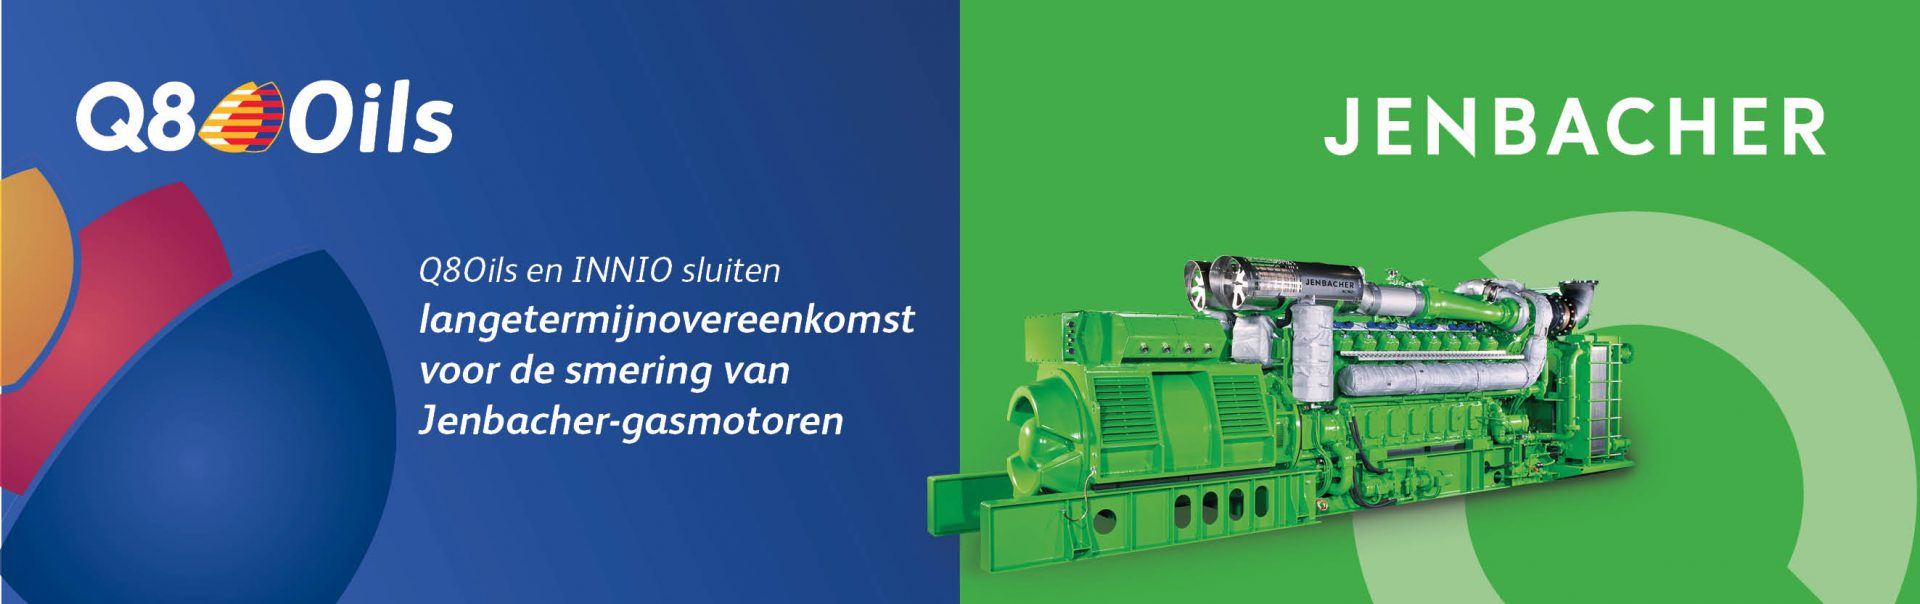 Q8Oils Jenbacher Homepage Nl